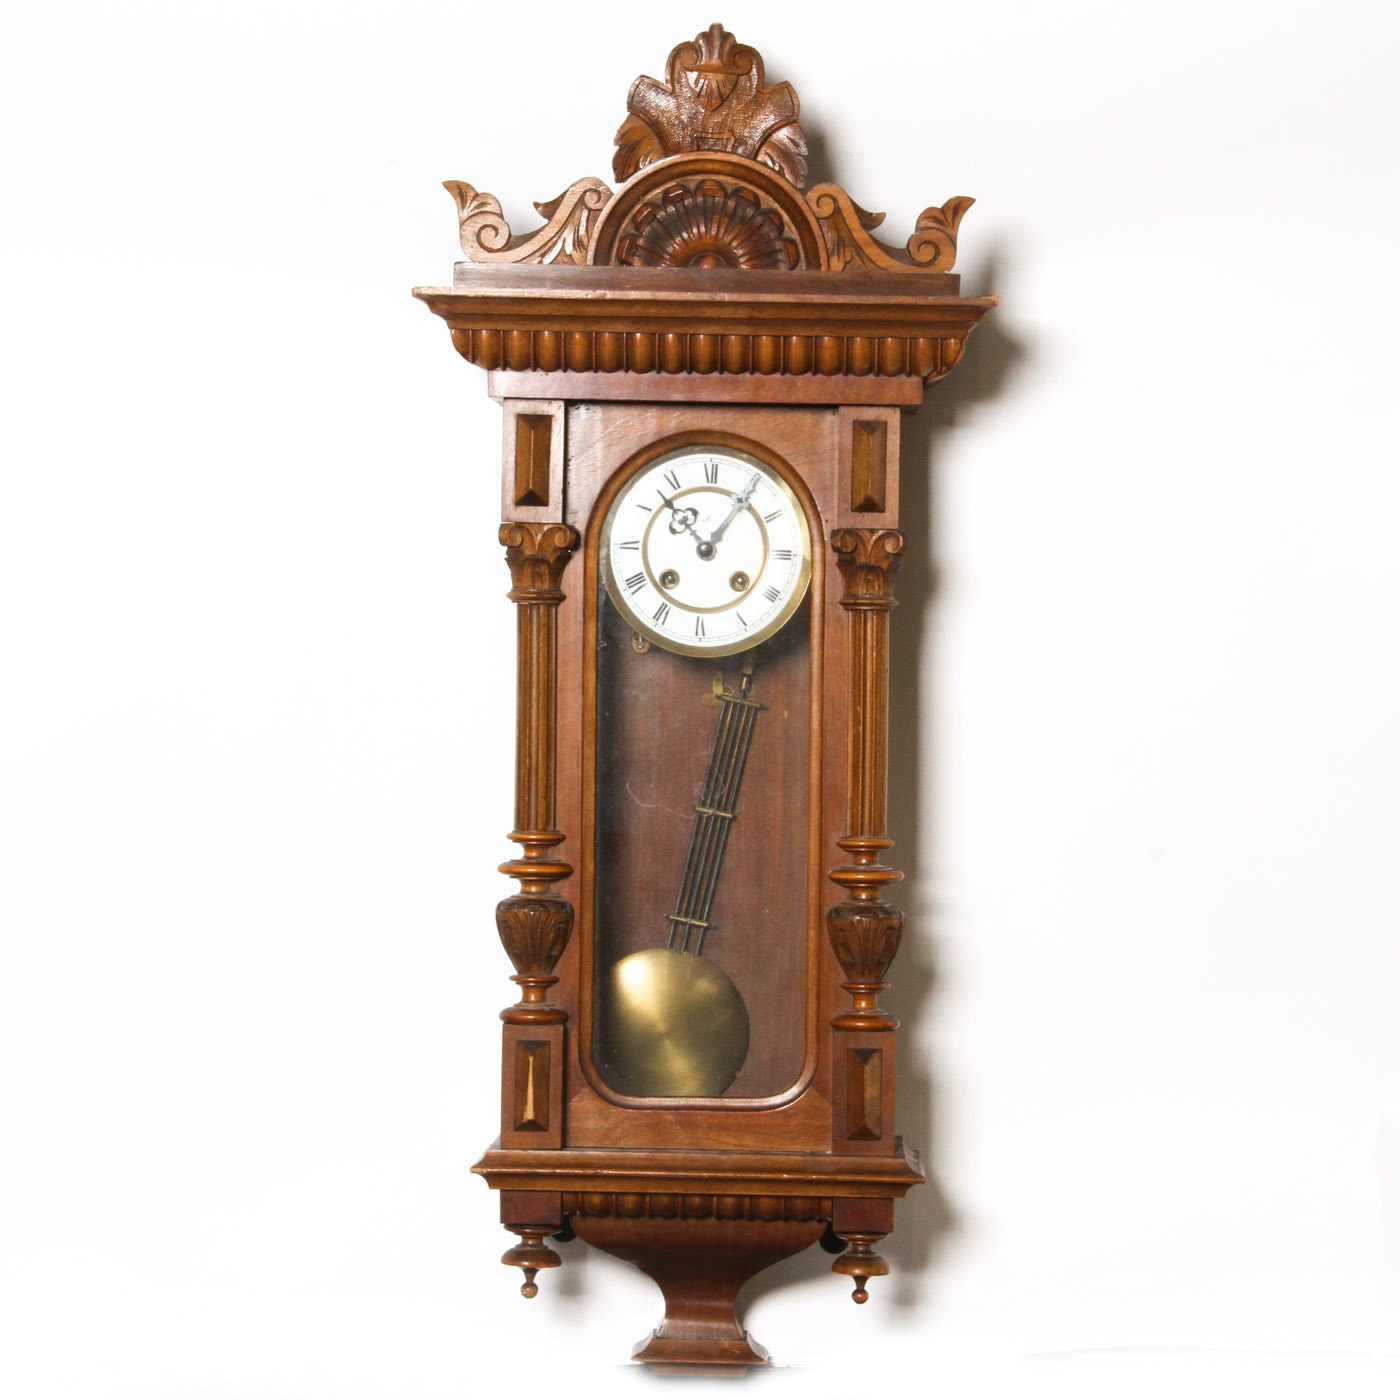 Vintage Ornately Carved Pendulum Wall Clock